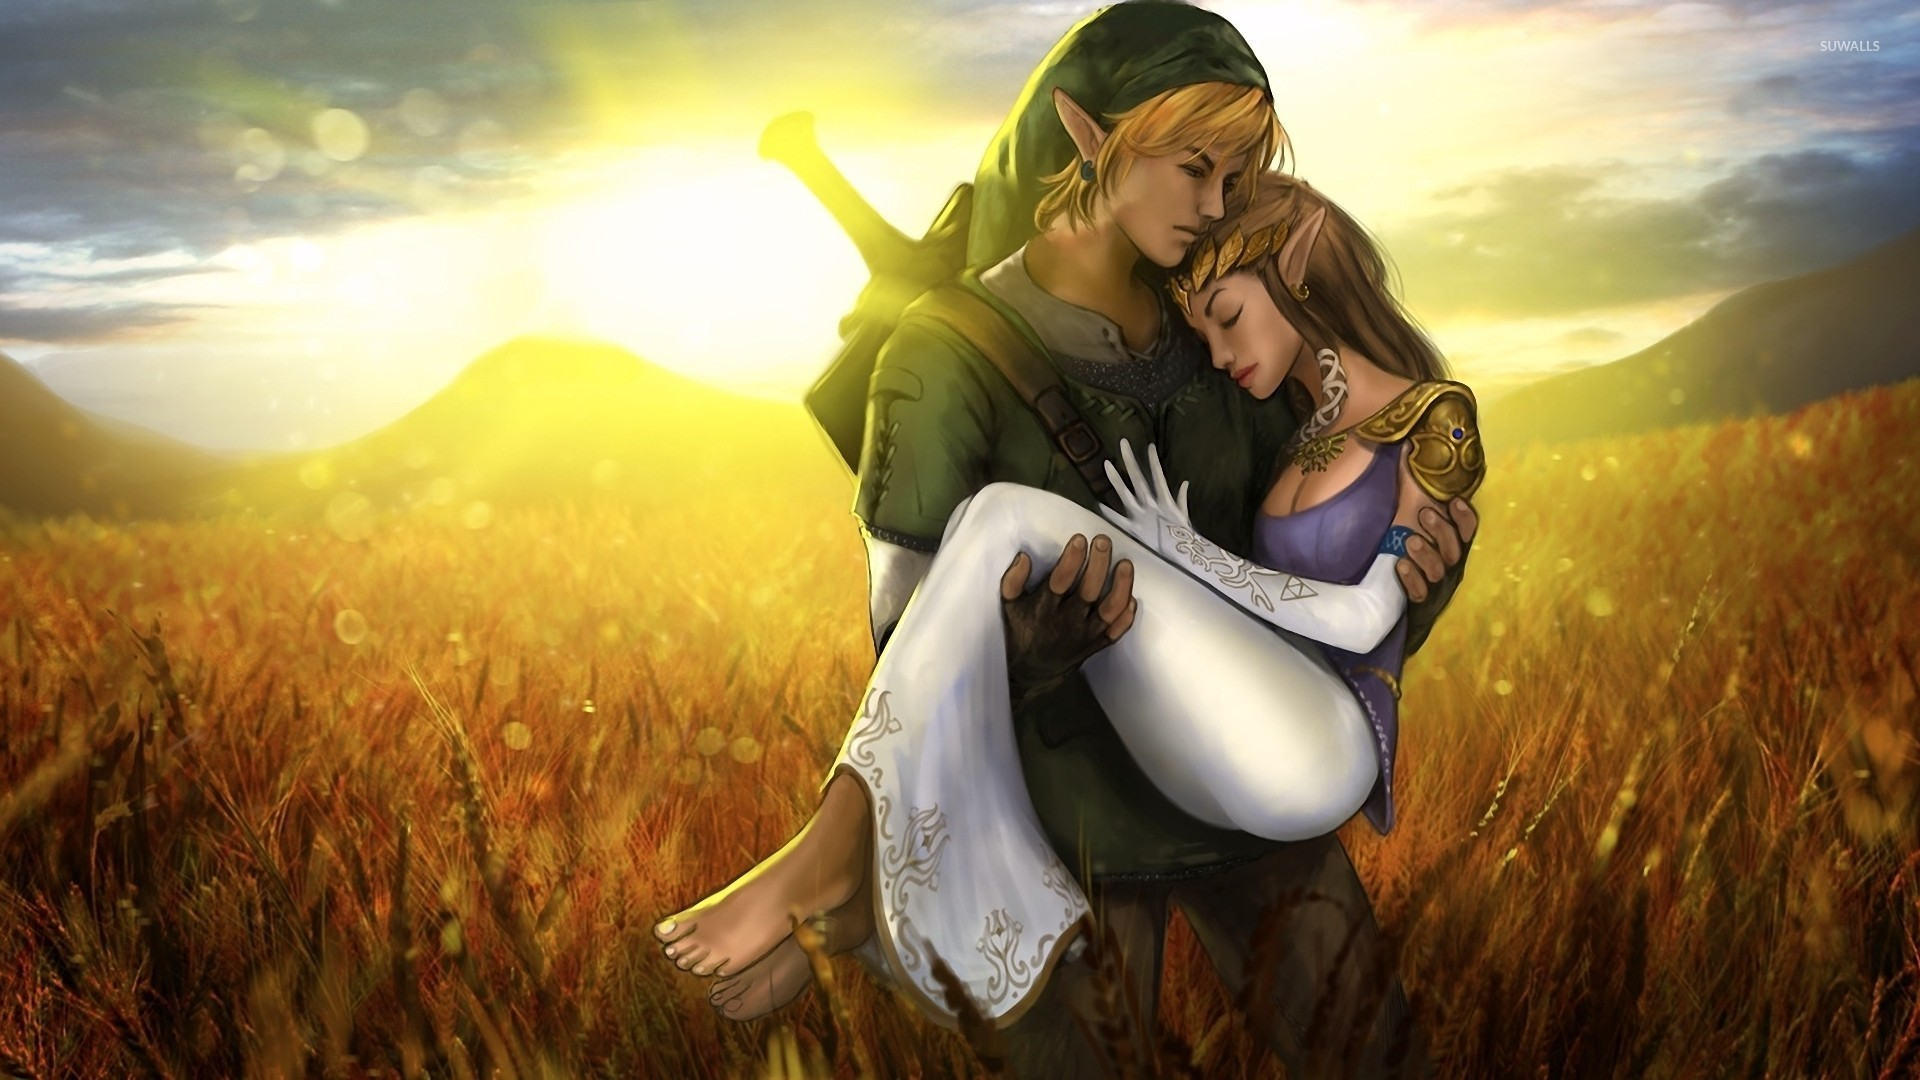 The Legend Of Zelda Boy With Girl Love Wallpaper Link And